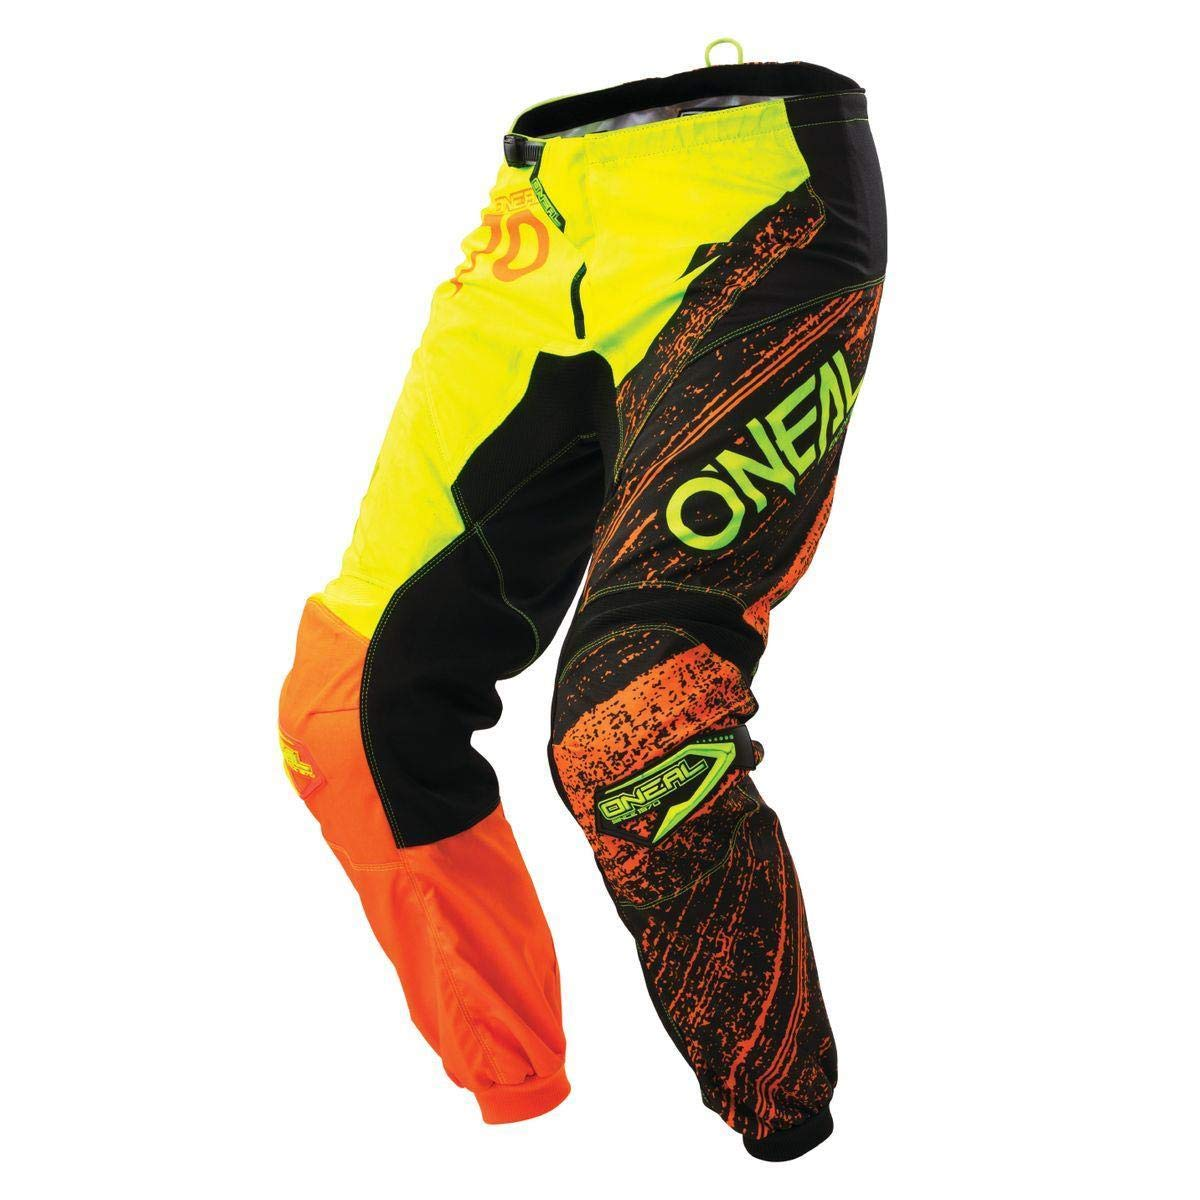 0108-960 - Oneal Element 2018 Burnout Motocross Pants 30 Black Hi-Viz Orange